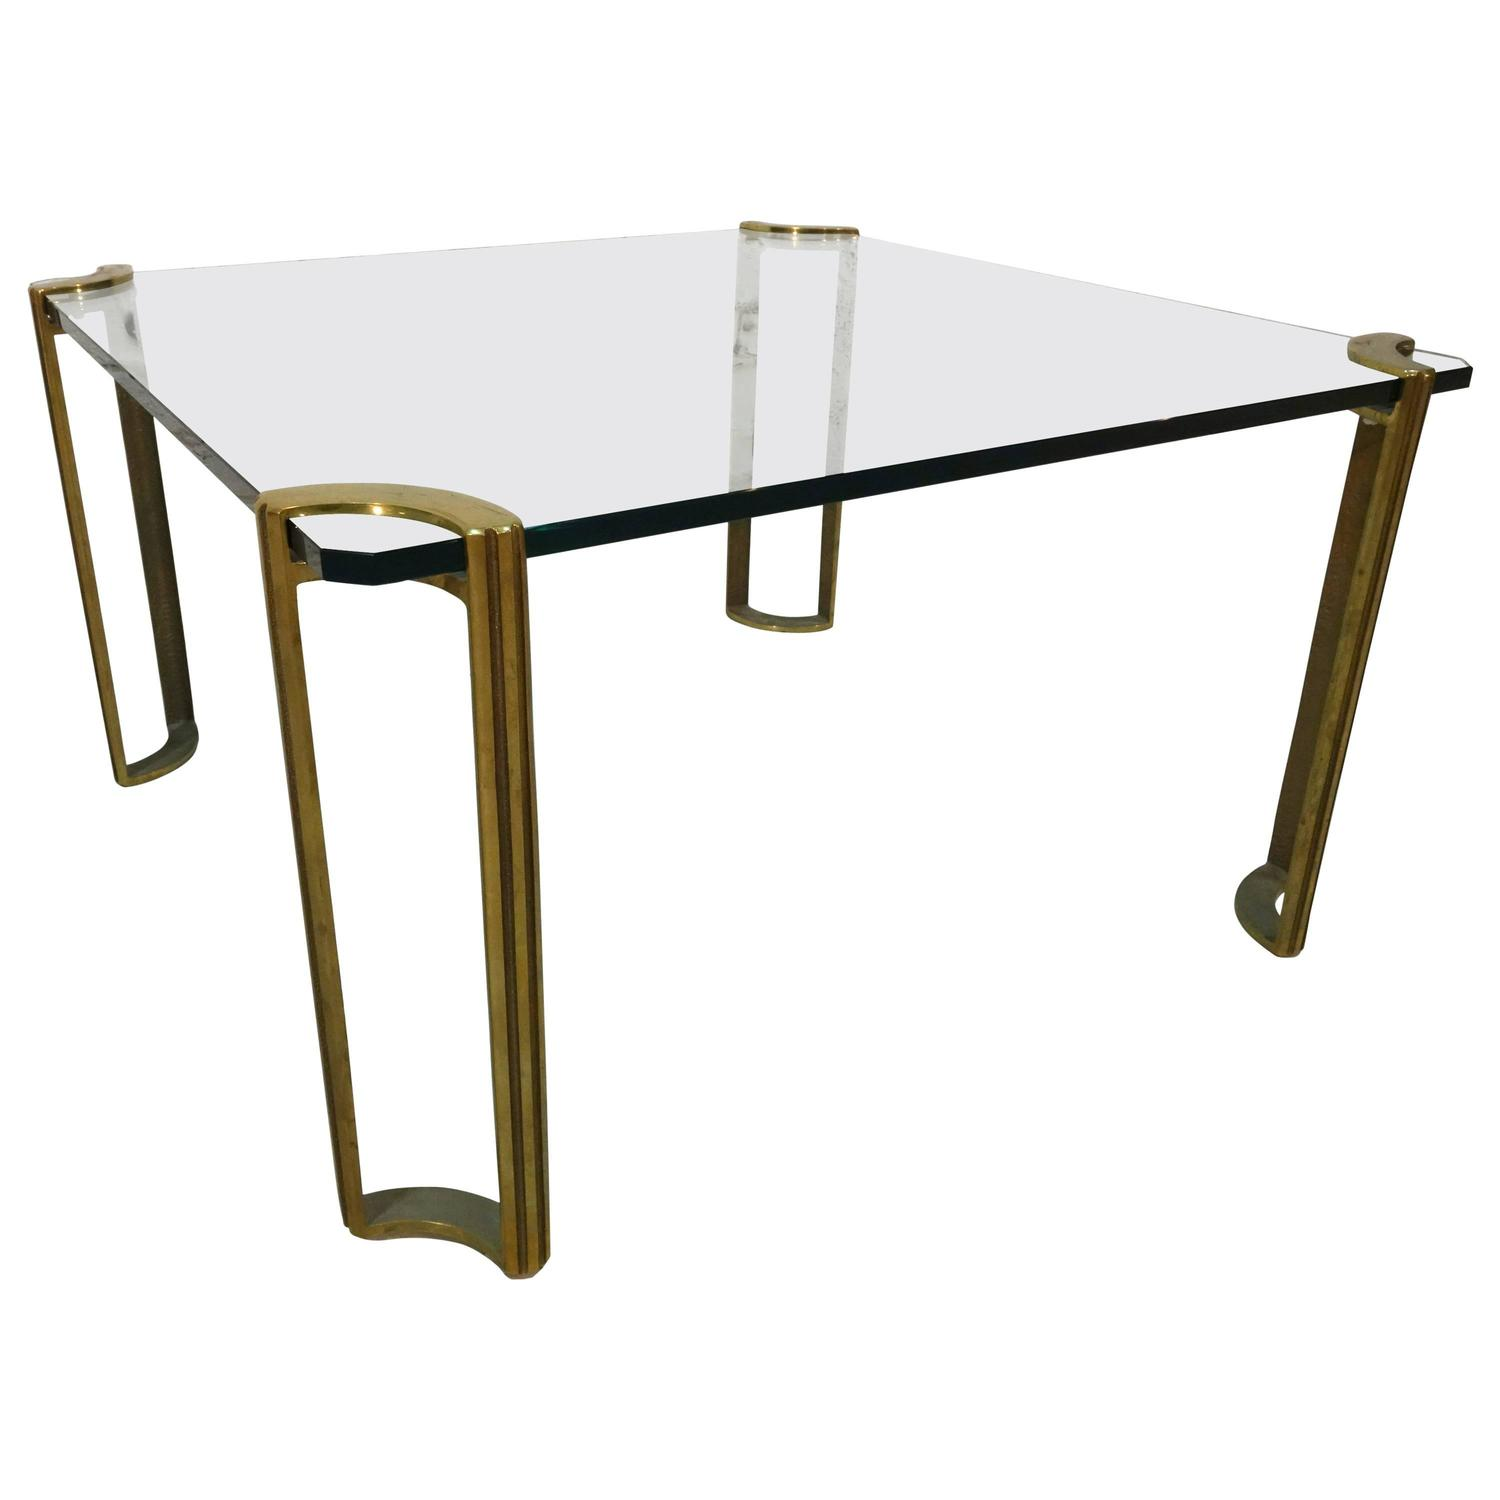 Artimeta Attributed Square Metal And Glass Coffee Table At: Square Bronze And Glass Coffee Table For Sale At 1stdibs